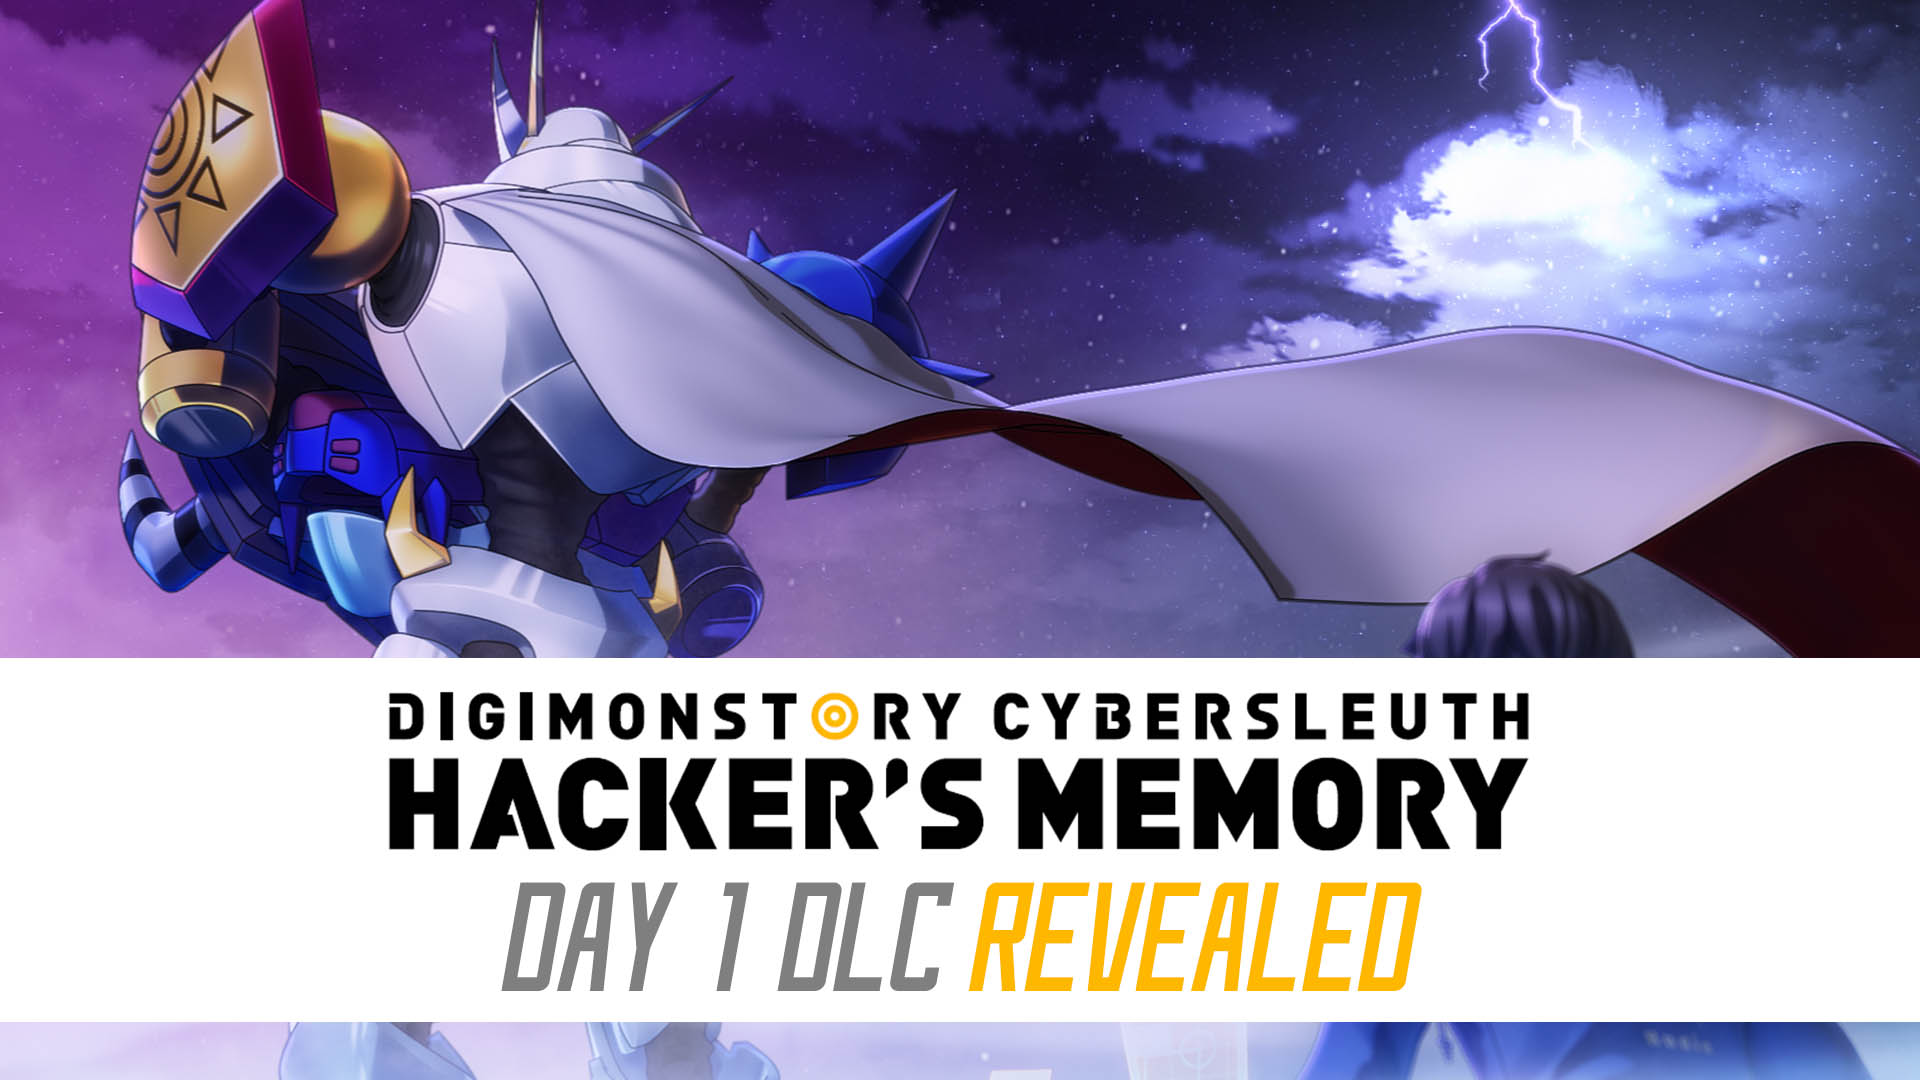 digimon-story-cybersleuth-hackers-memory-day-one-dlc-retail-bonus-details-revealed-bandai-namco-jrpg-rpg-playstation-4-ps-vita